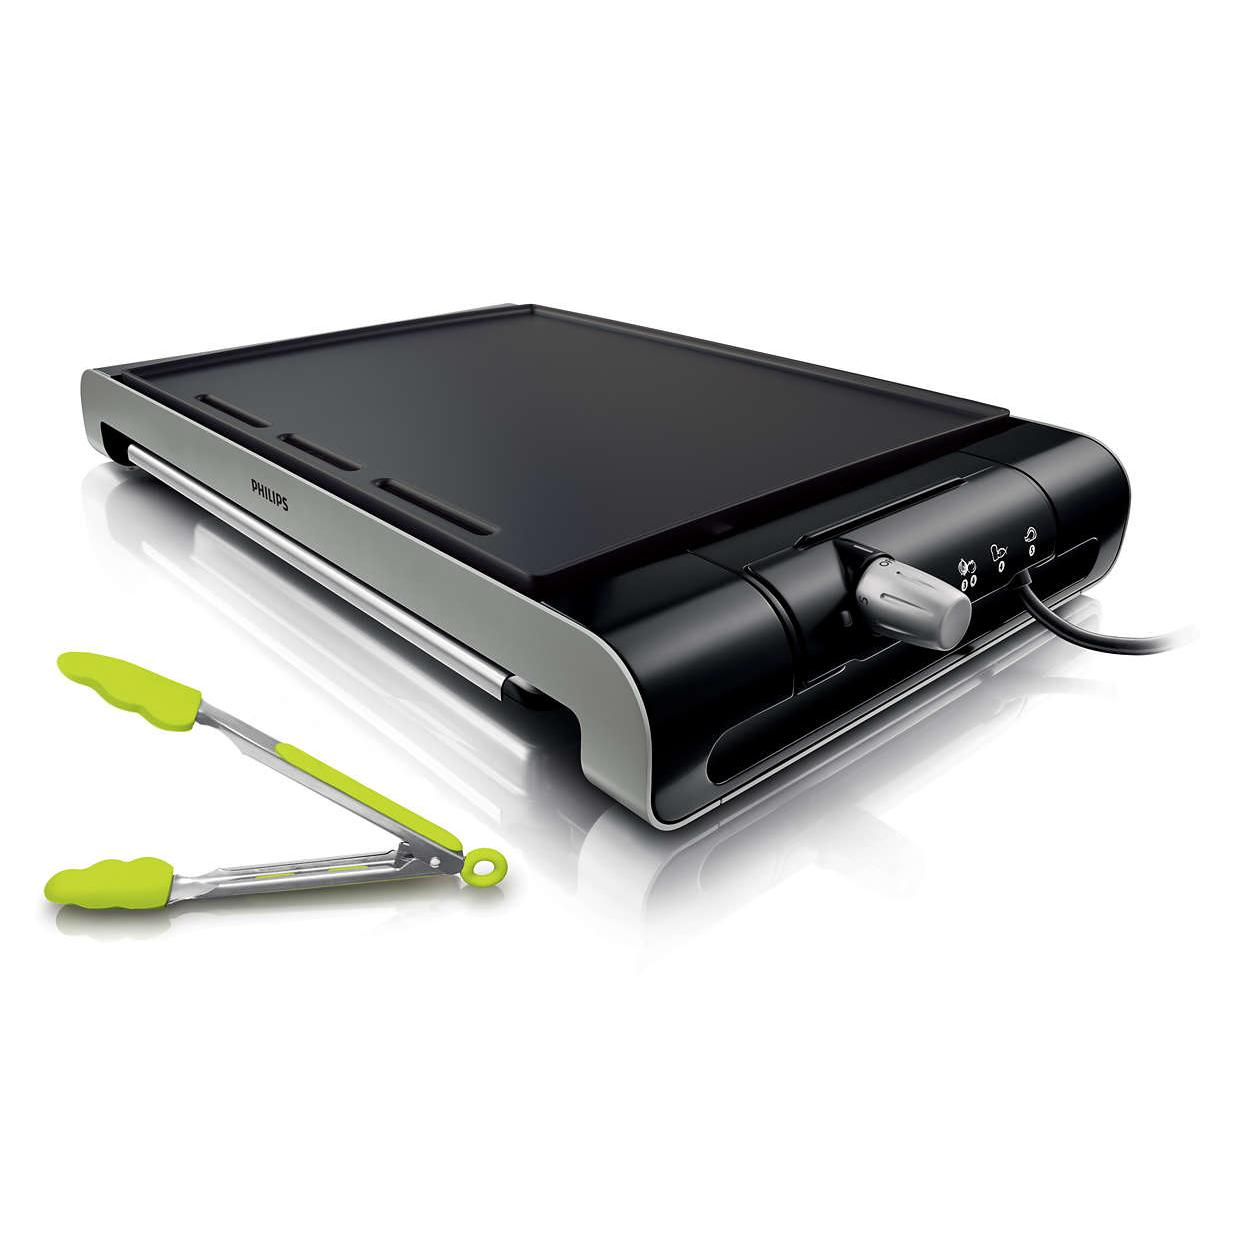 PLANCHA PHILIPS Hd4430/20 2300w